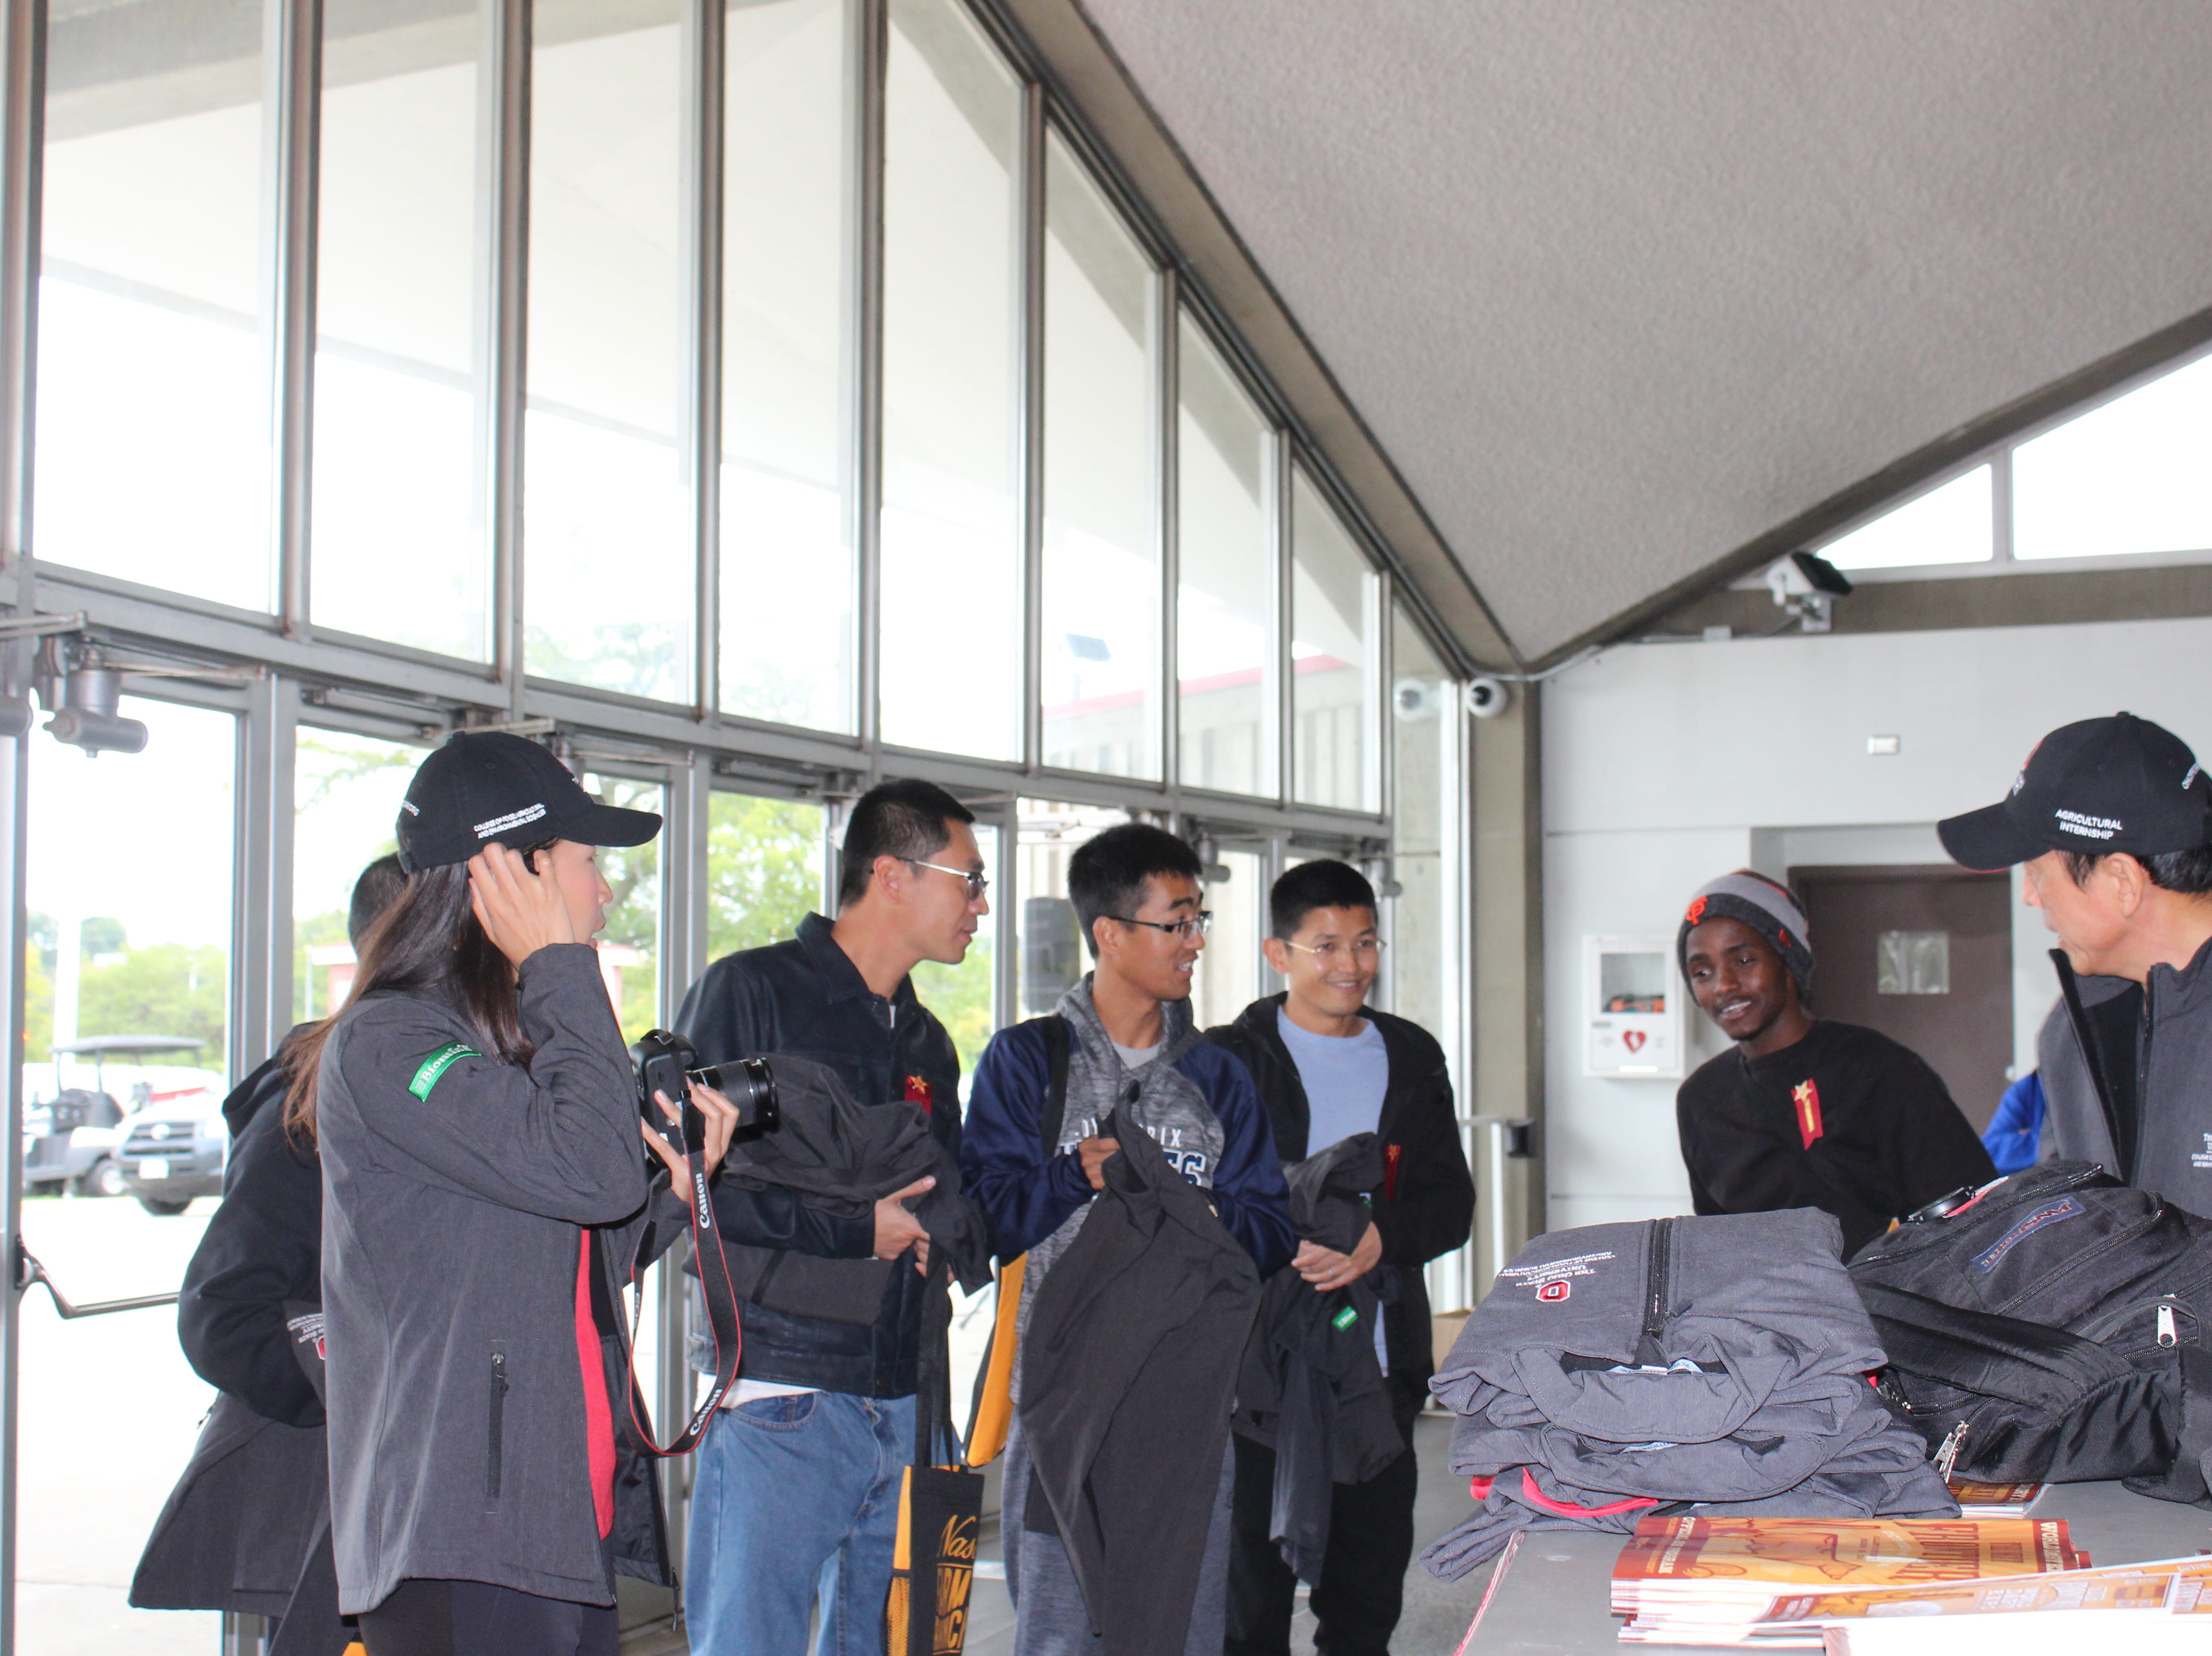 These students done their new jackets from the Ohio State College of Food and Agricultural Sciences.